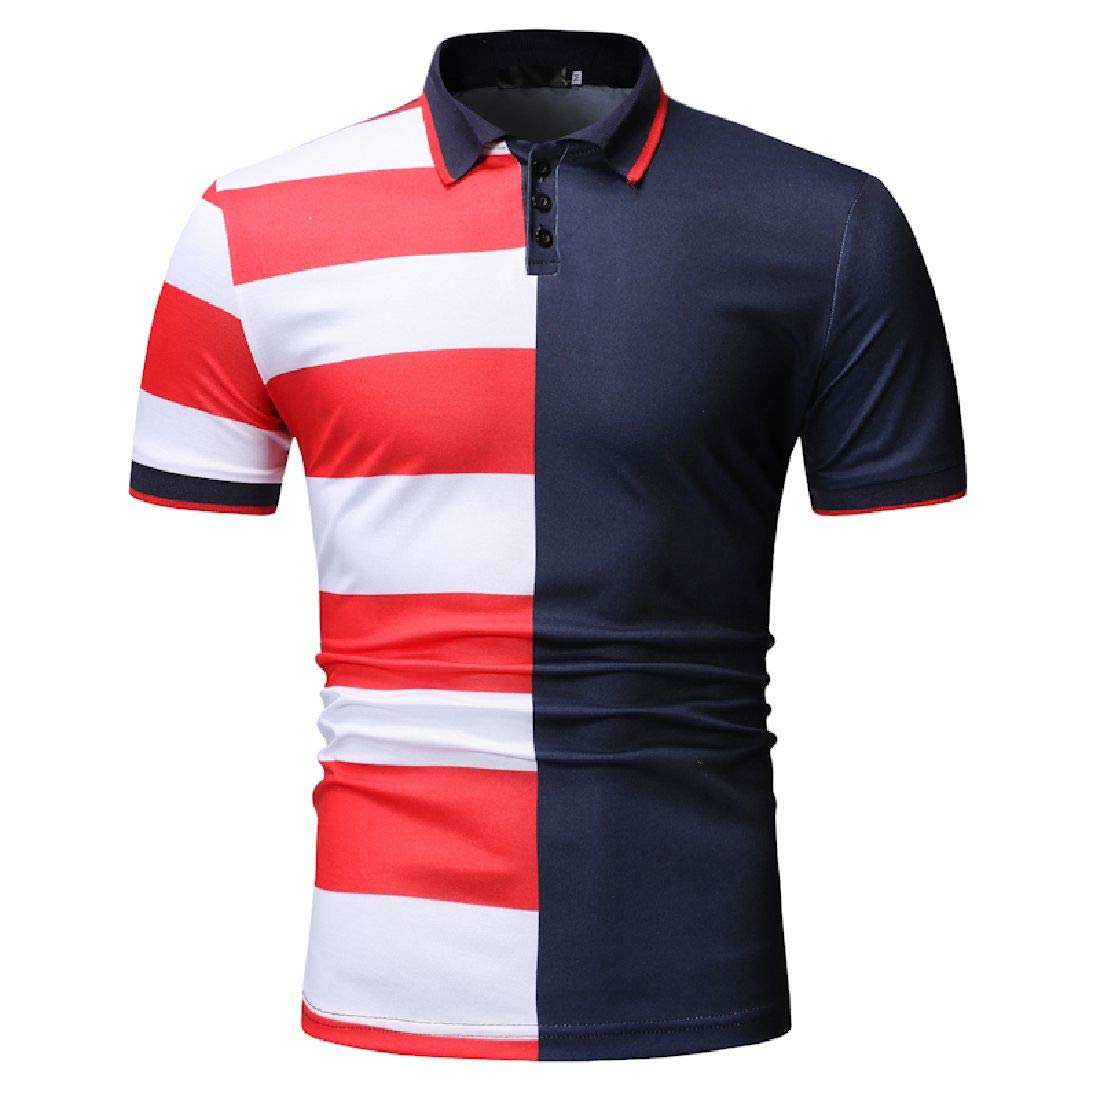 Domple Men Short Sleeve Fashion Summer Casual Business Contrast Polo Shirt